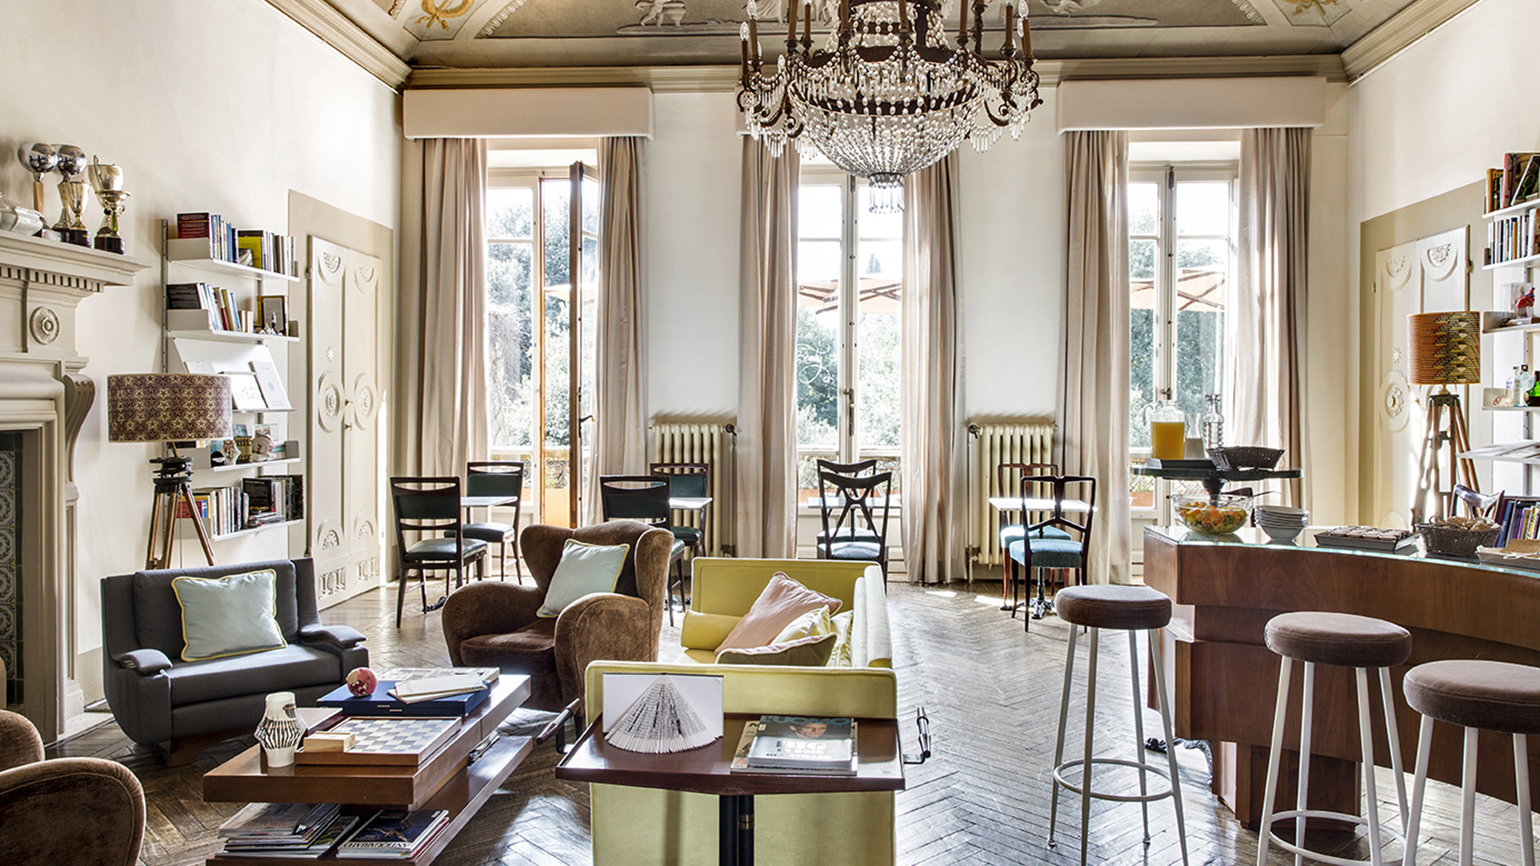 This 19th-Century Italian Palazzo is Now a Luxe Bed and Breakfast